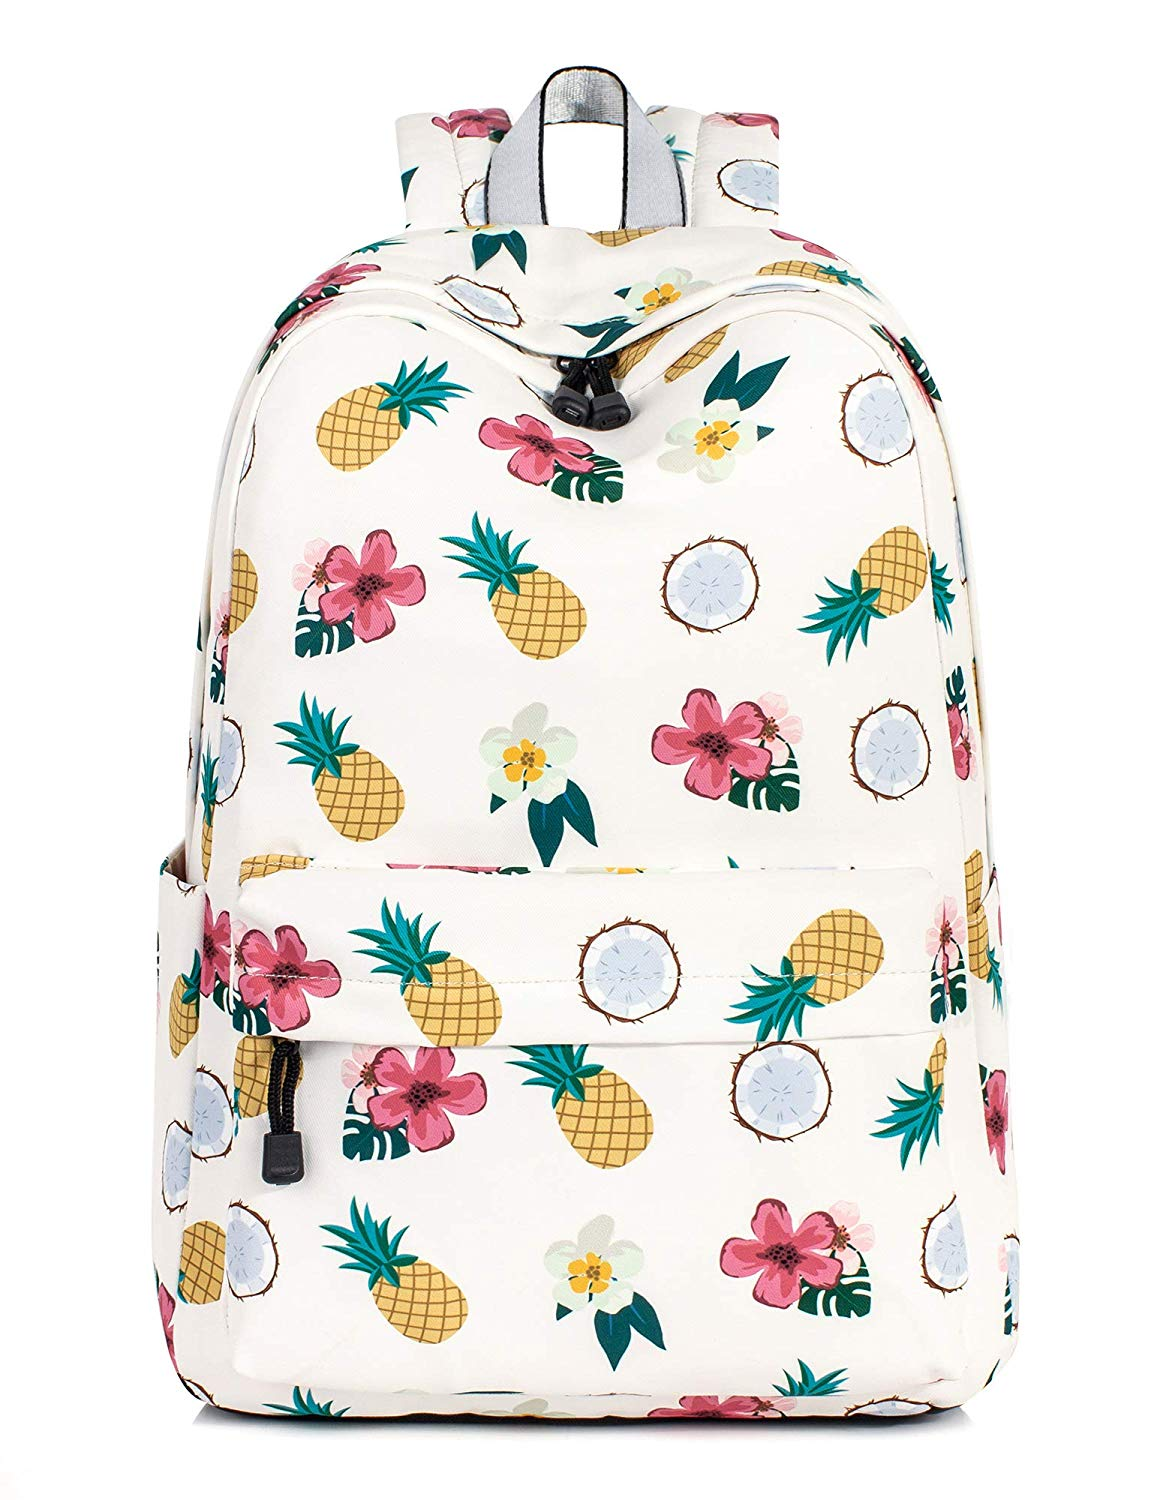 Fun and Unique Back to School Products To Have - pineapple backpack